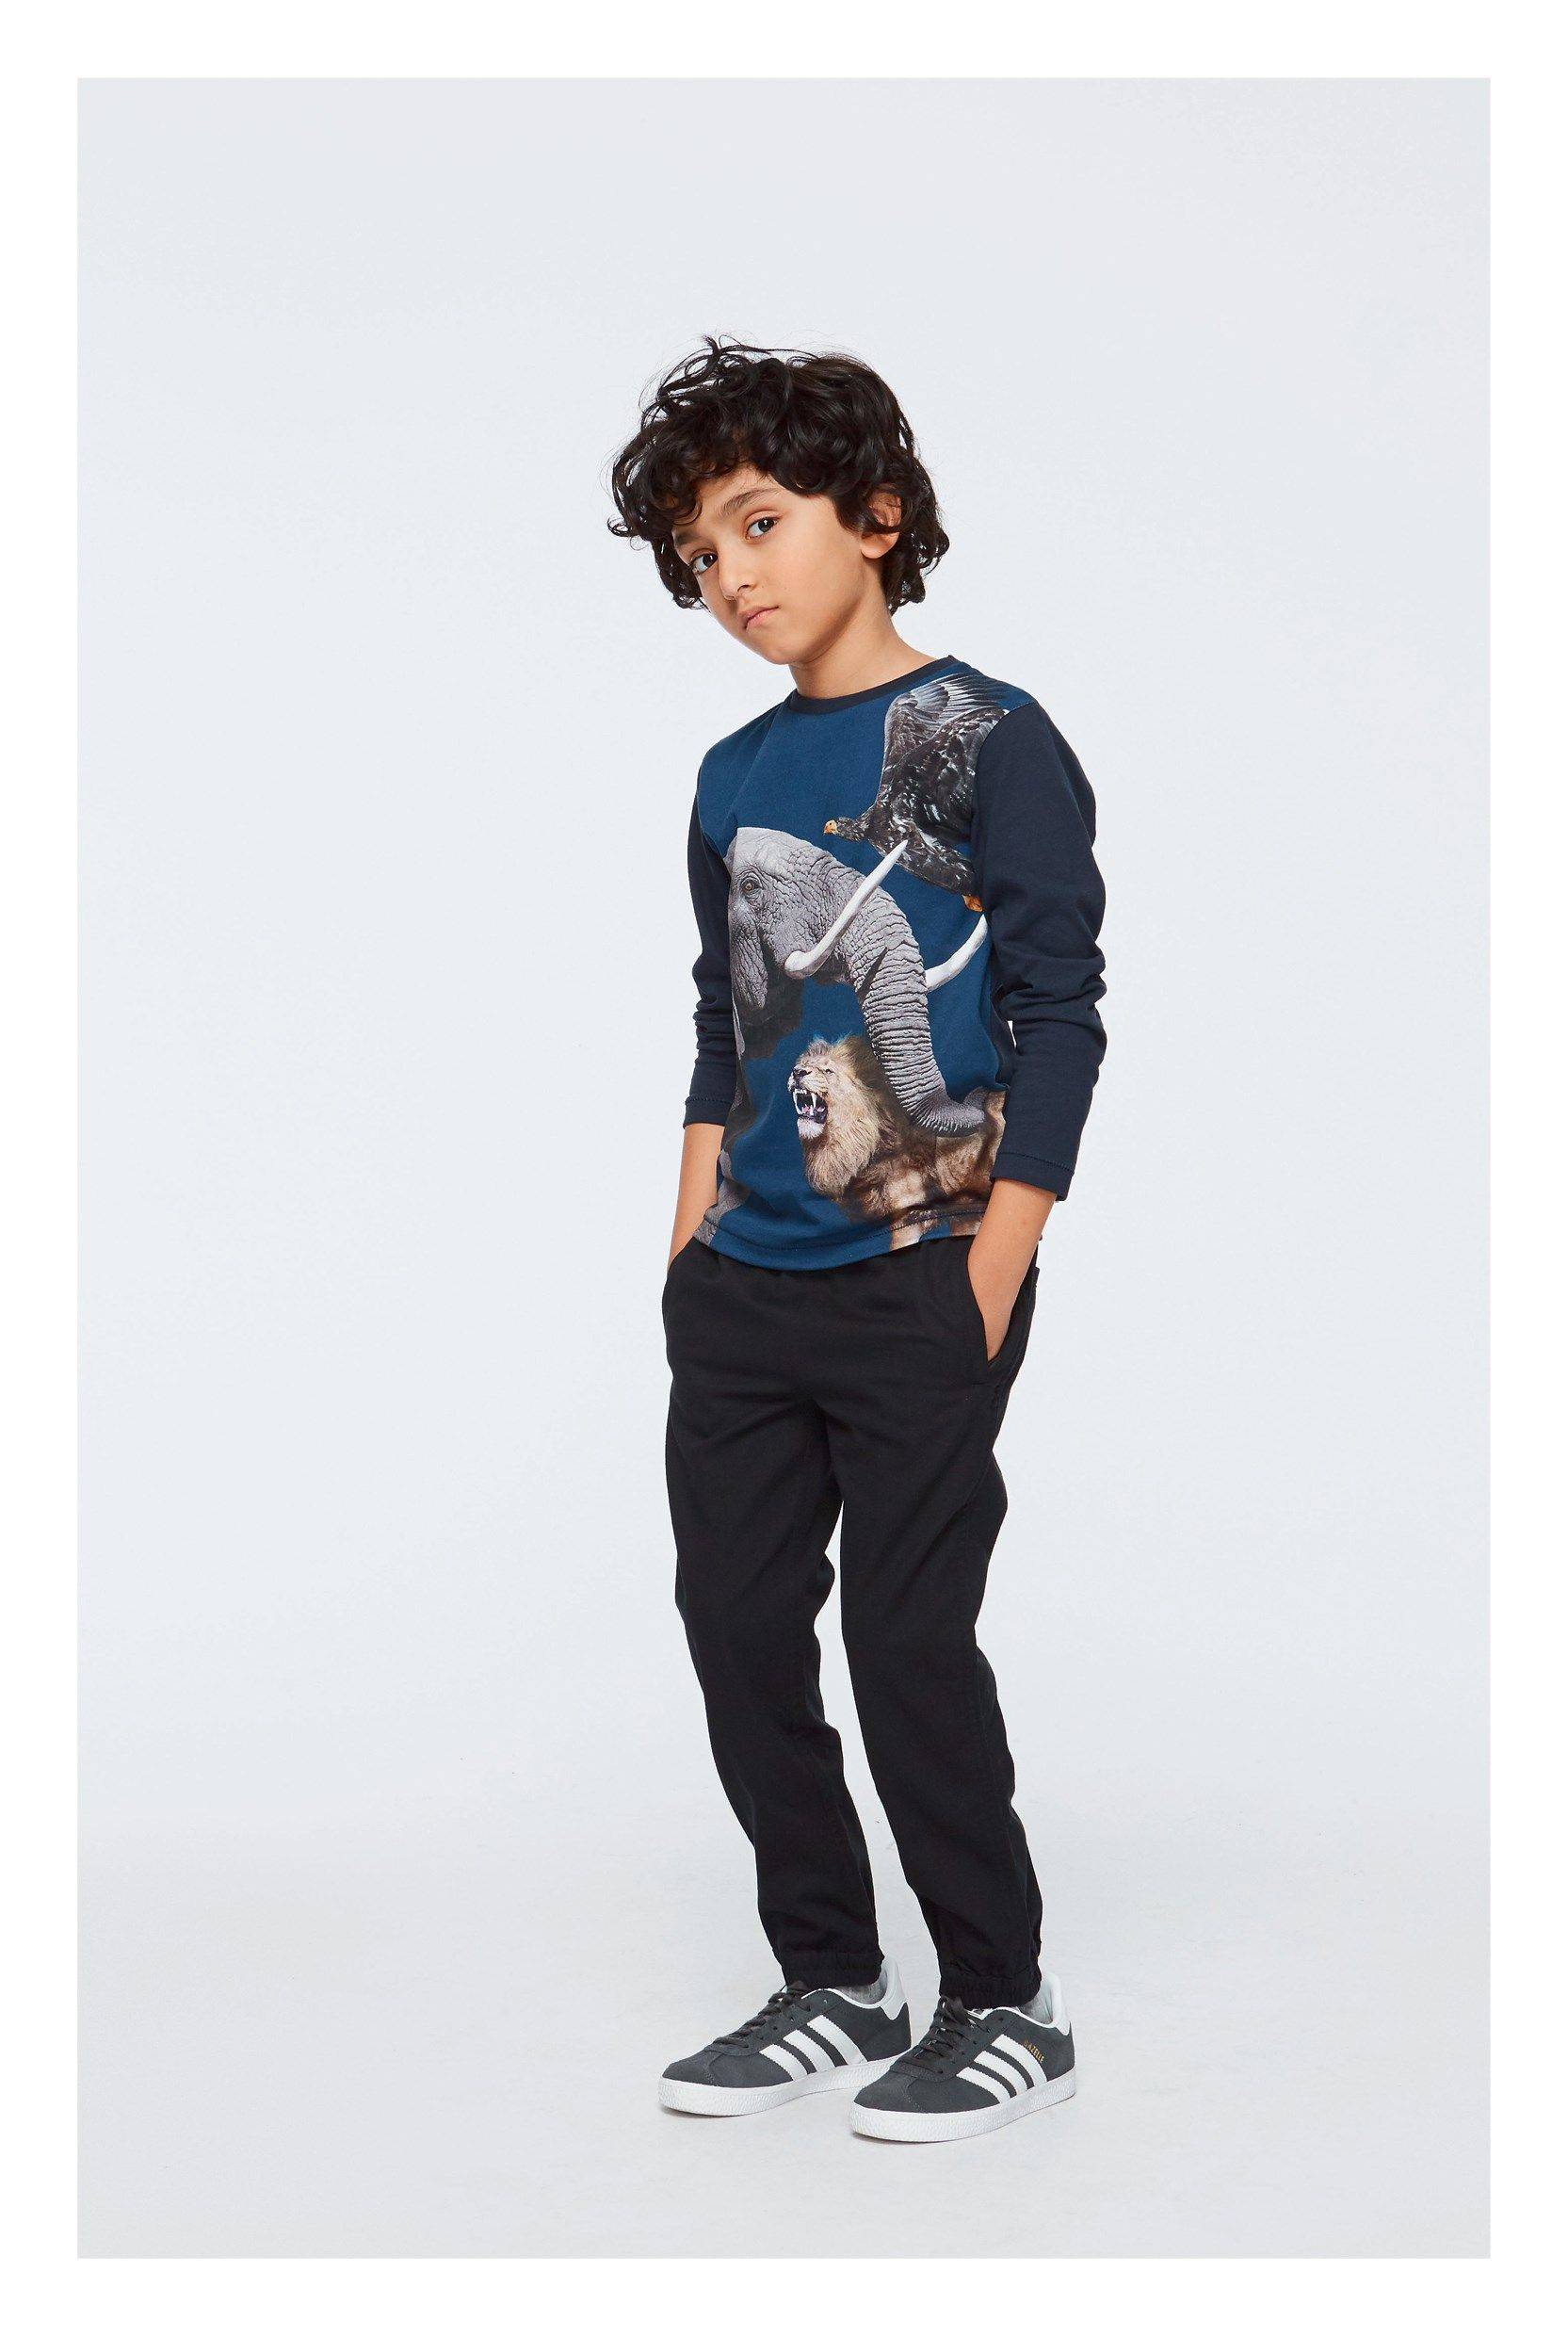 264264e8c See this cool clothing from Molo kids - @molokids   Baby's and kid's ...